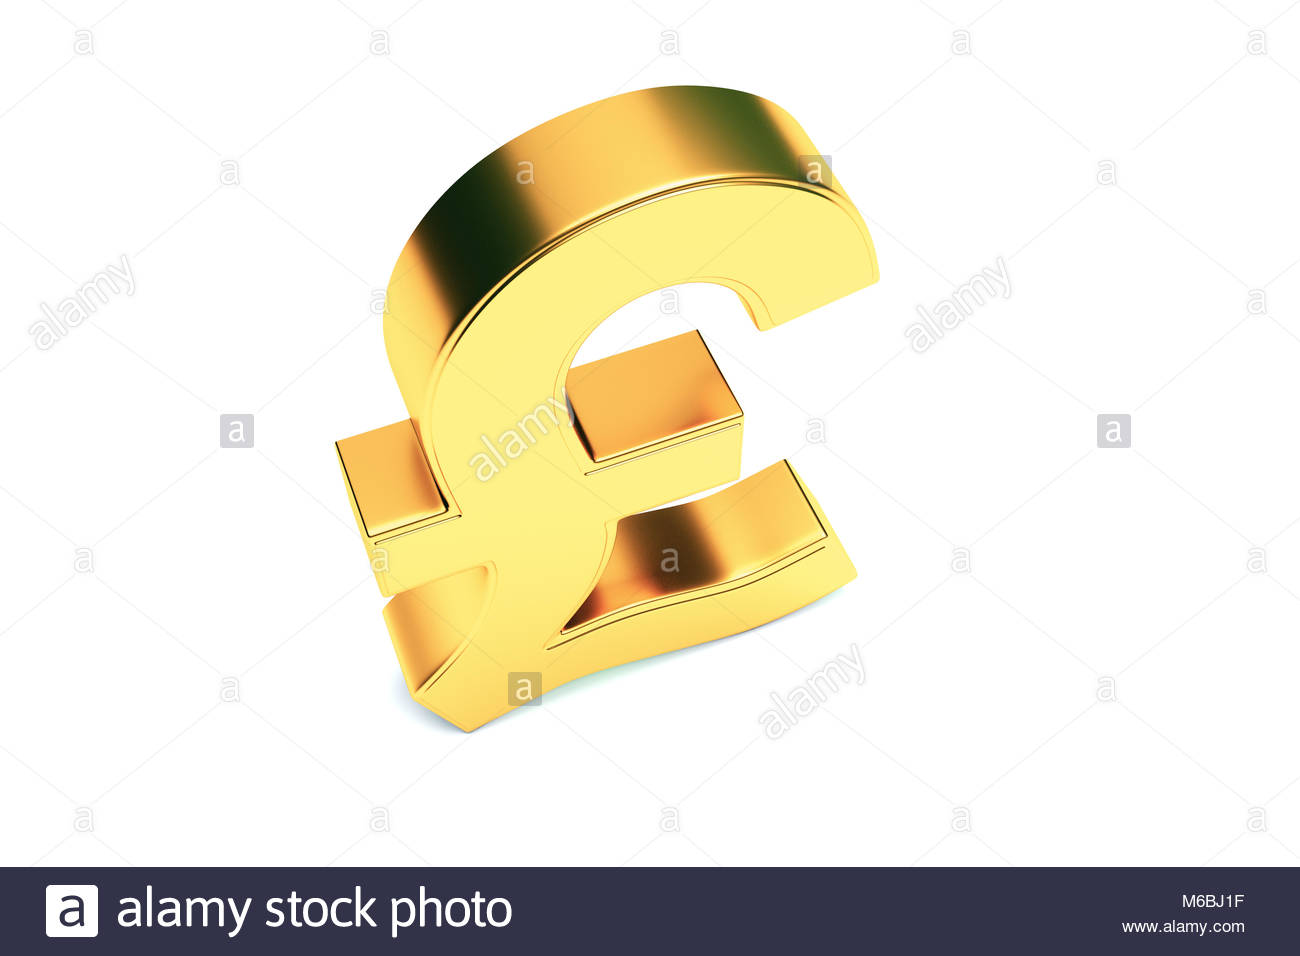 Sterling Sign Isolated On White Photo Stock